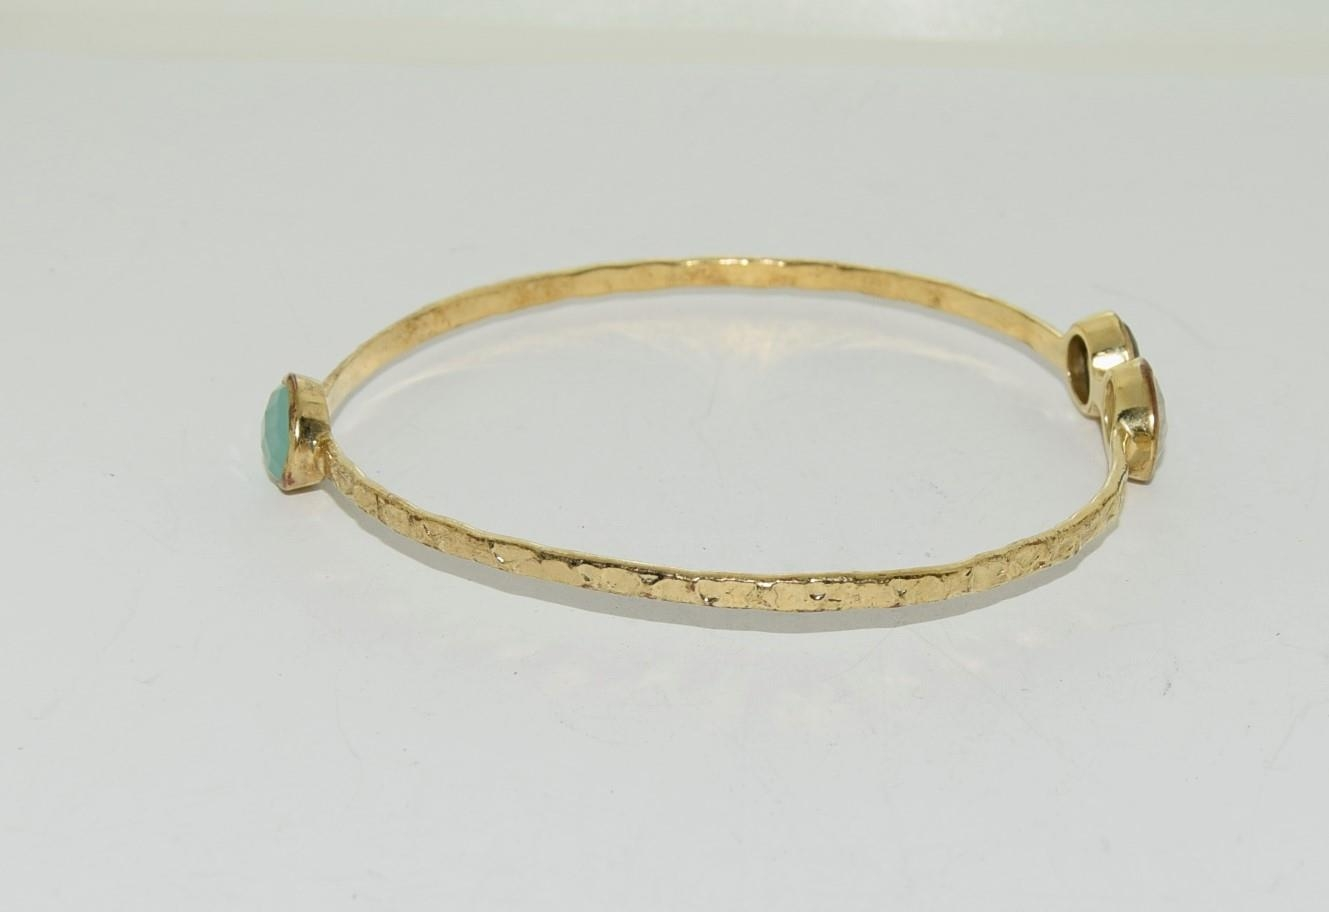 Two moonstone and crysophase gilded bangles. - Image 2 of 3